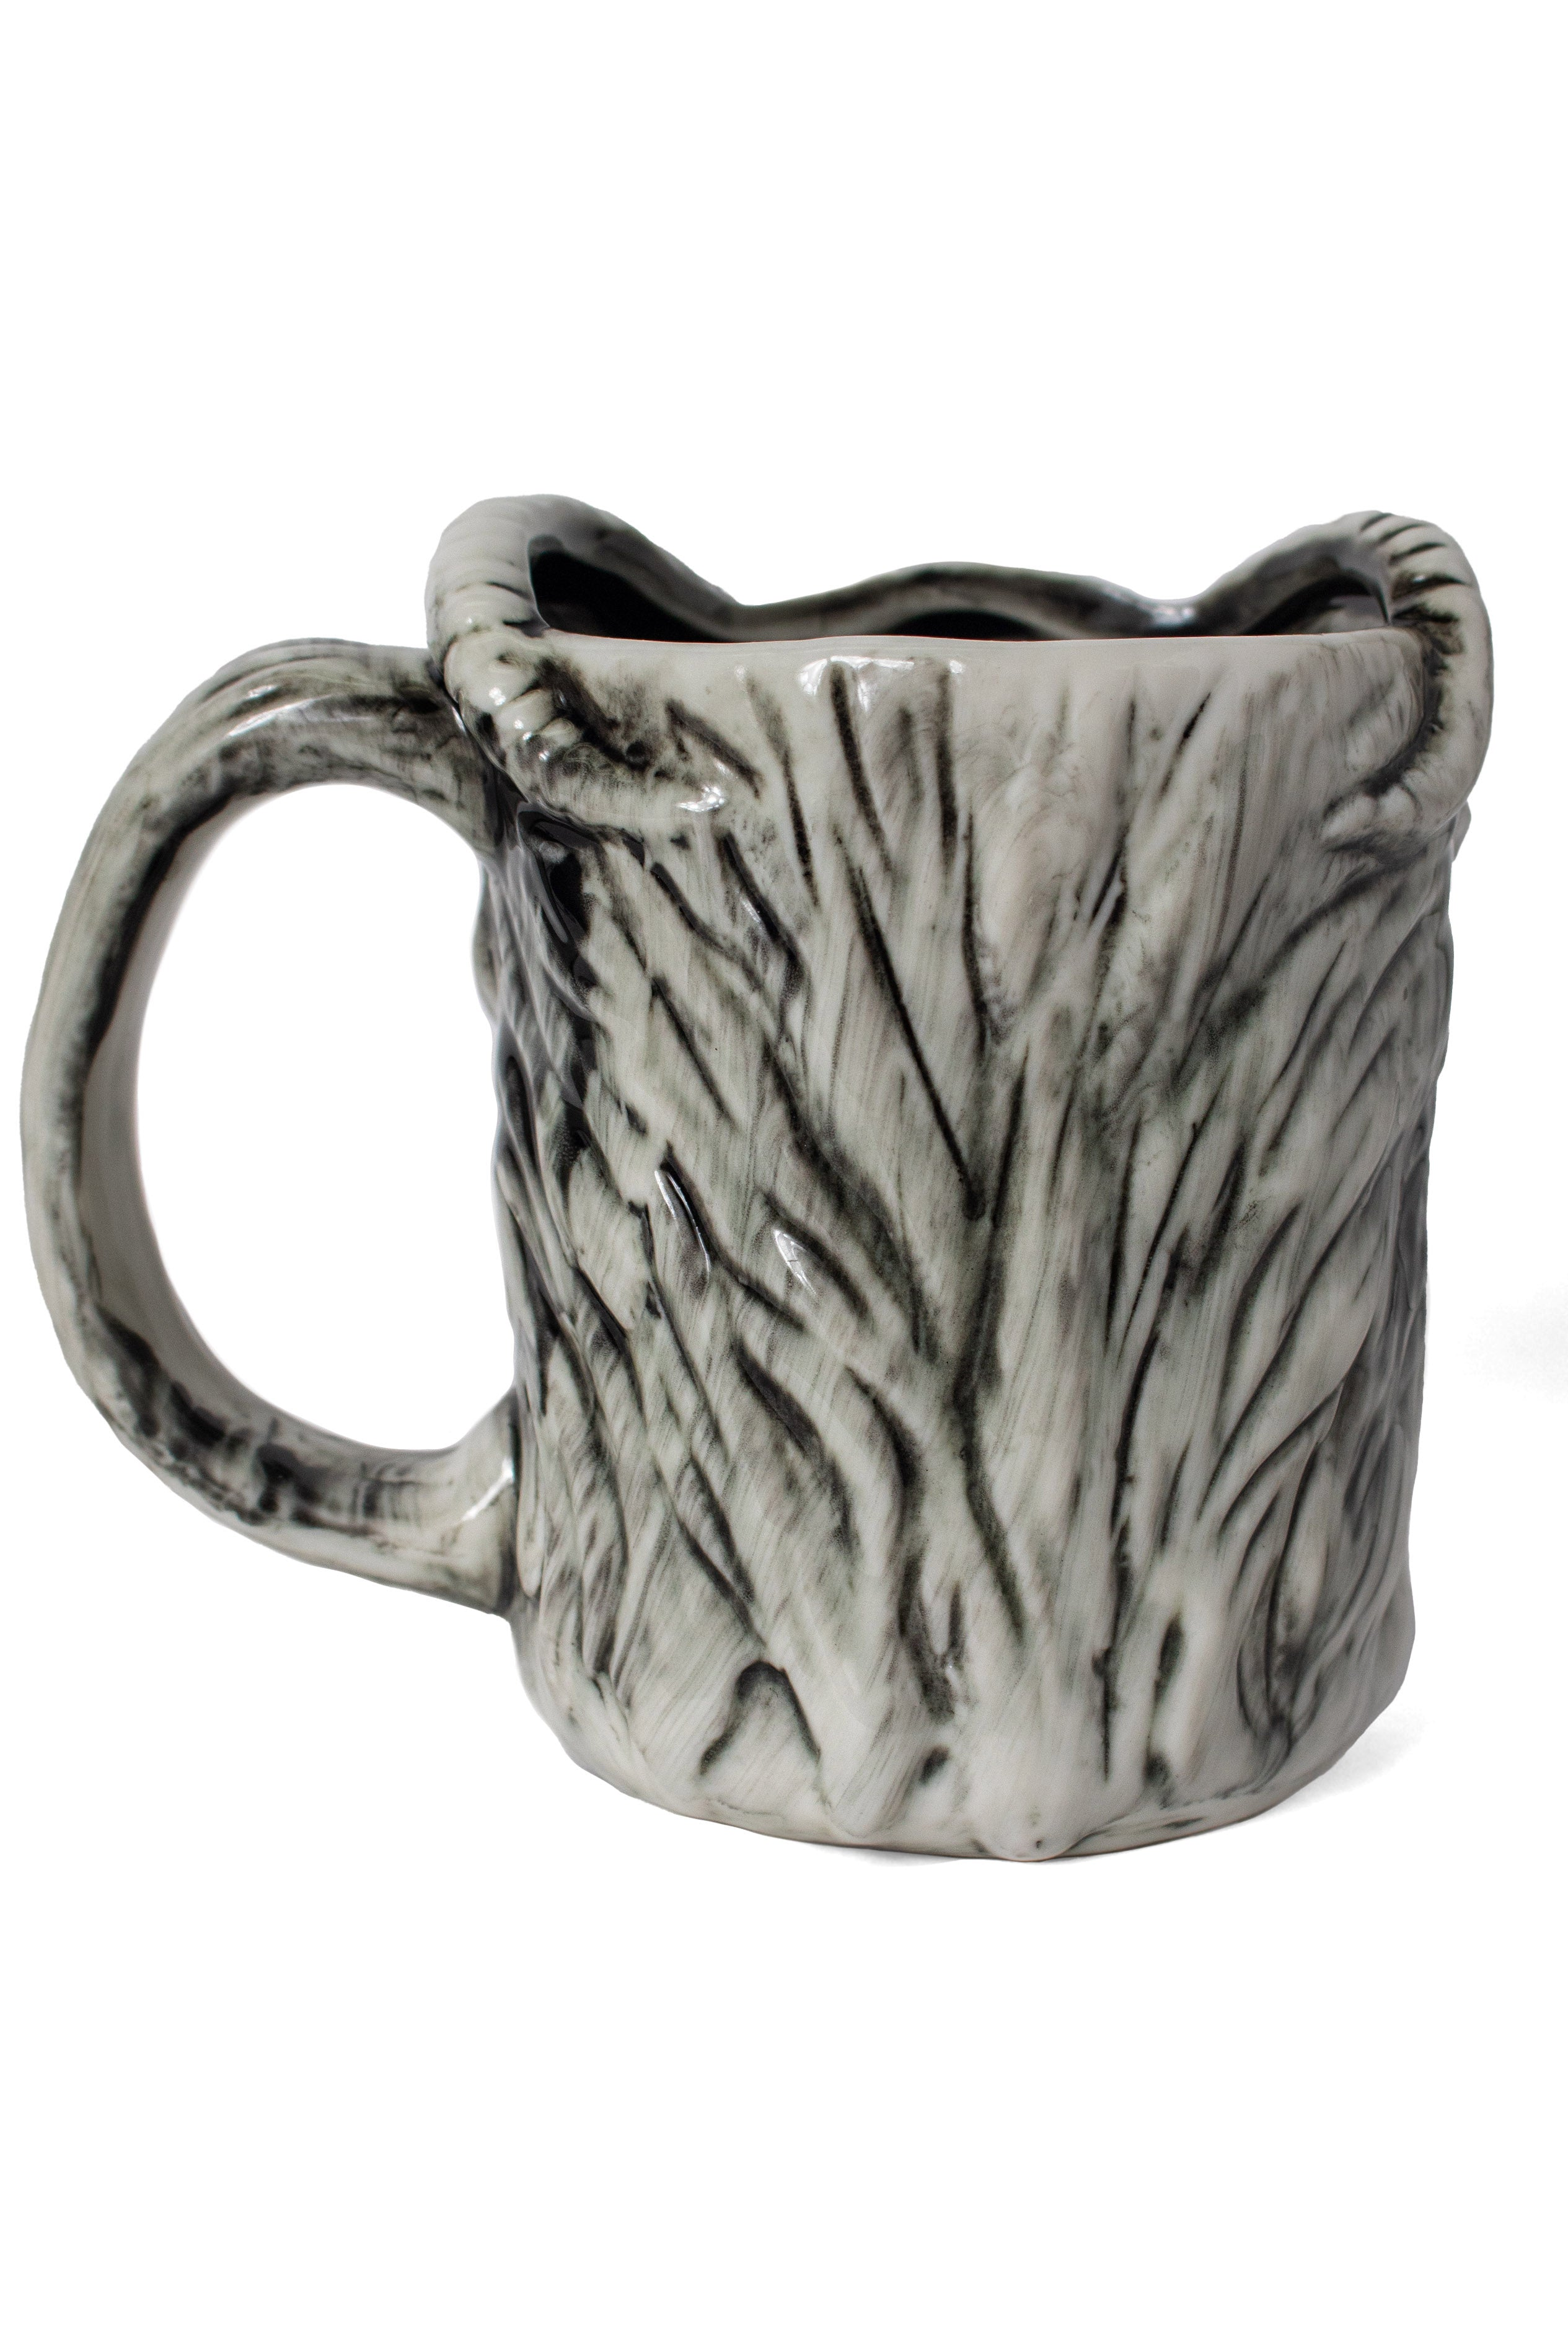 Krampus  - Molded Ceramic Mug